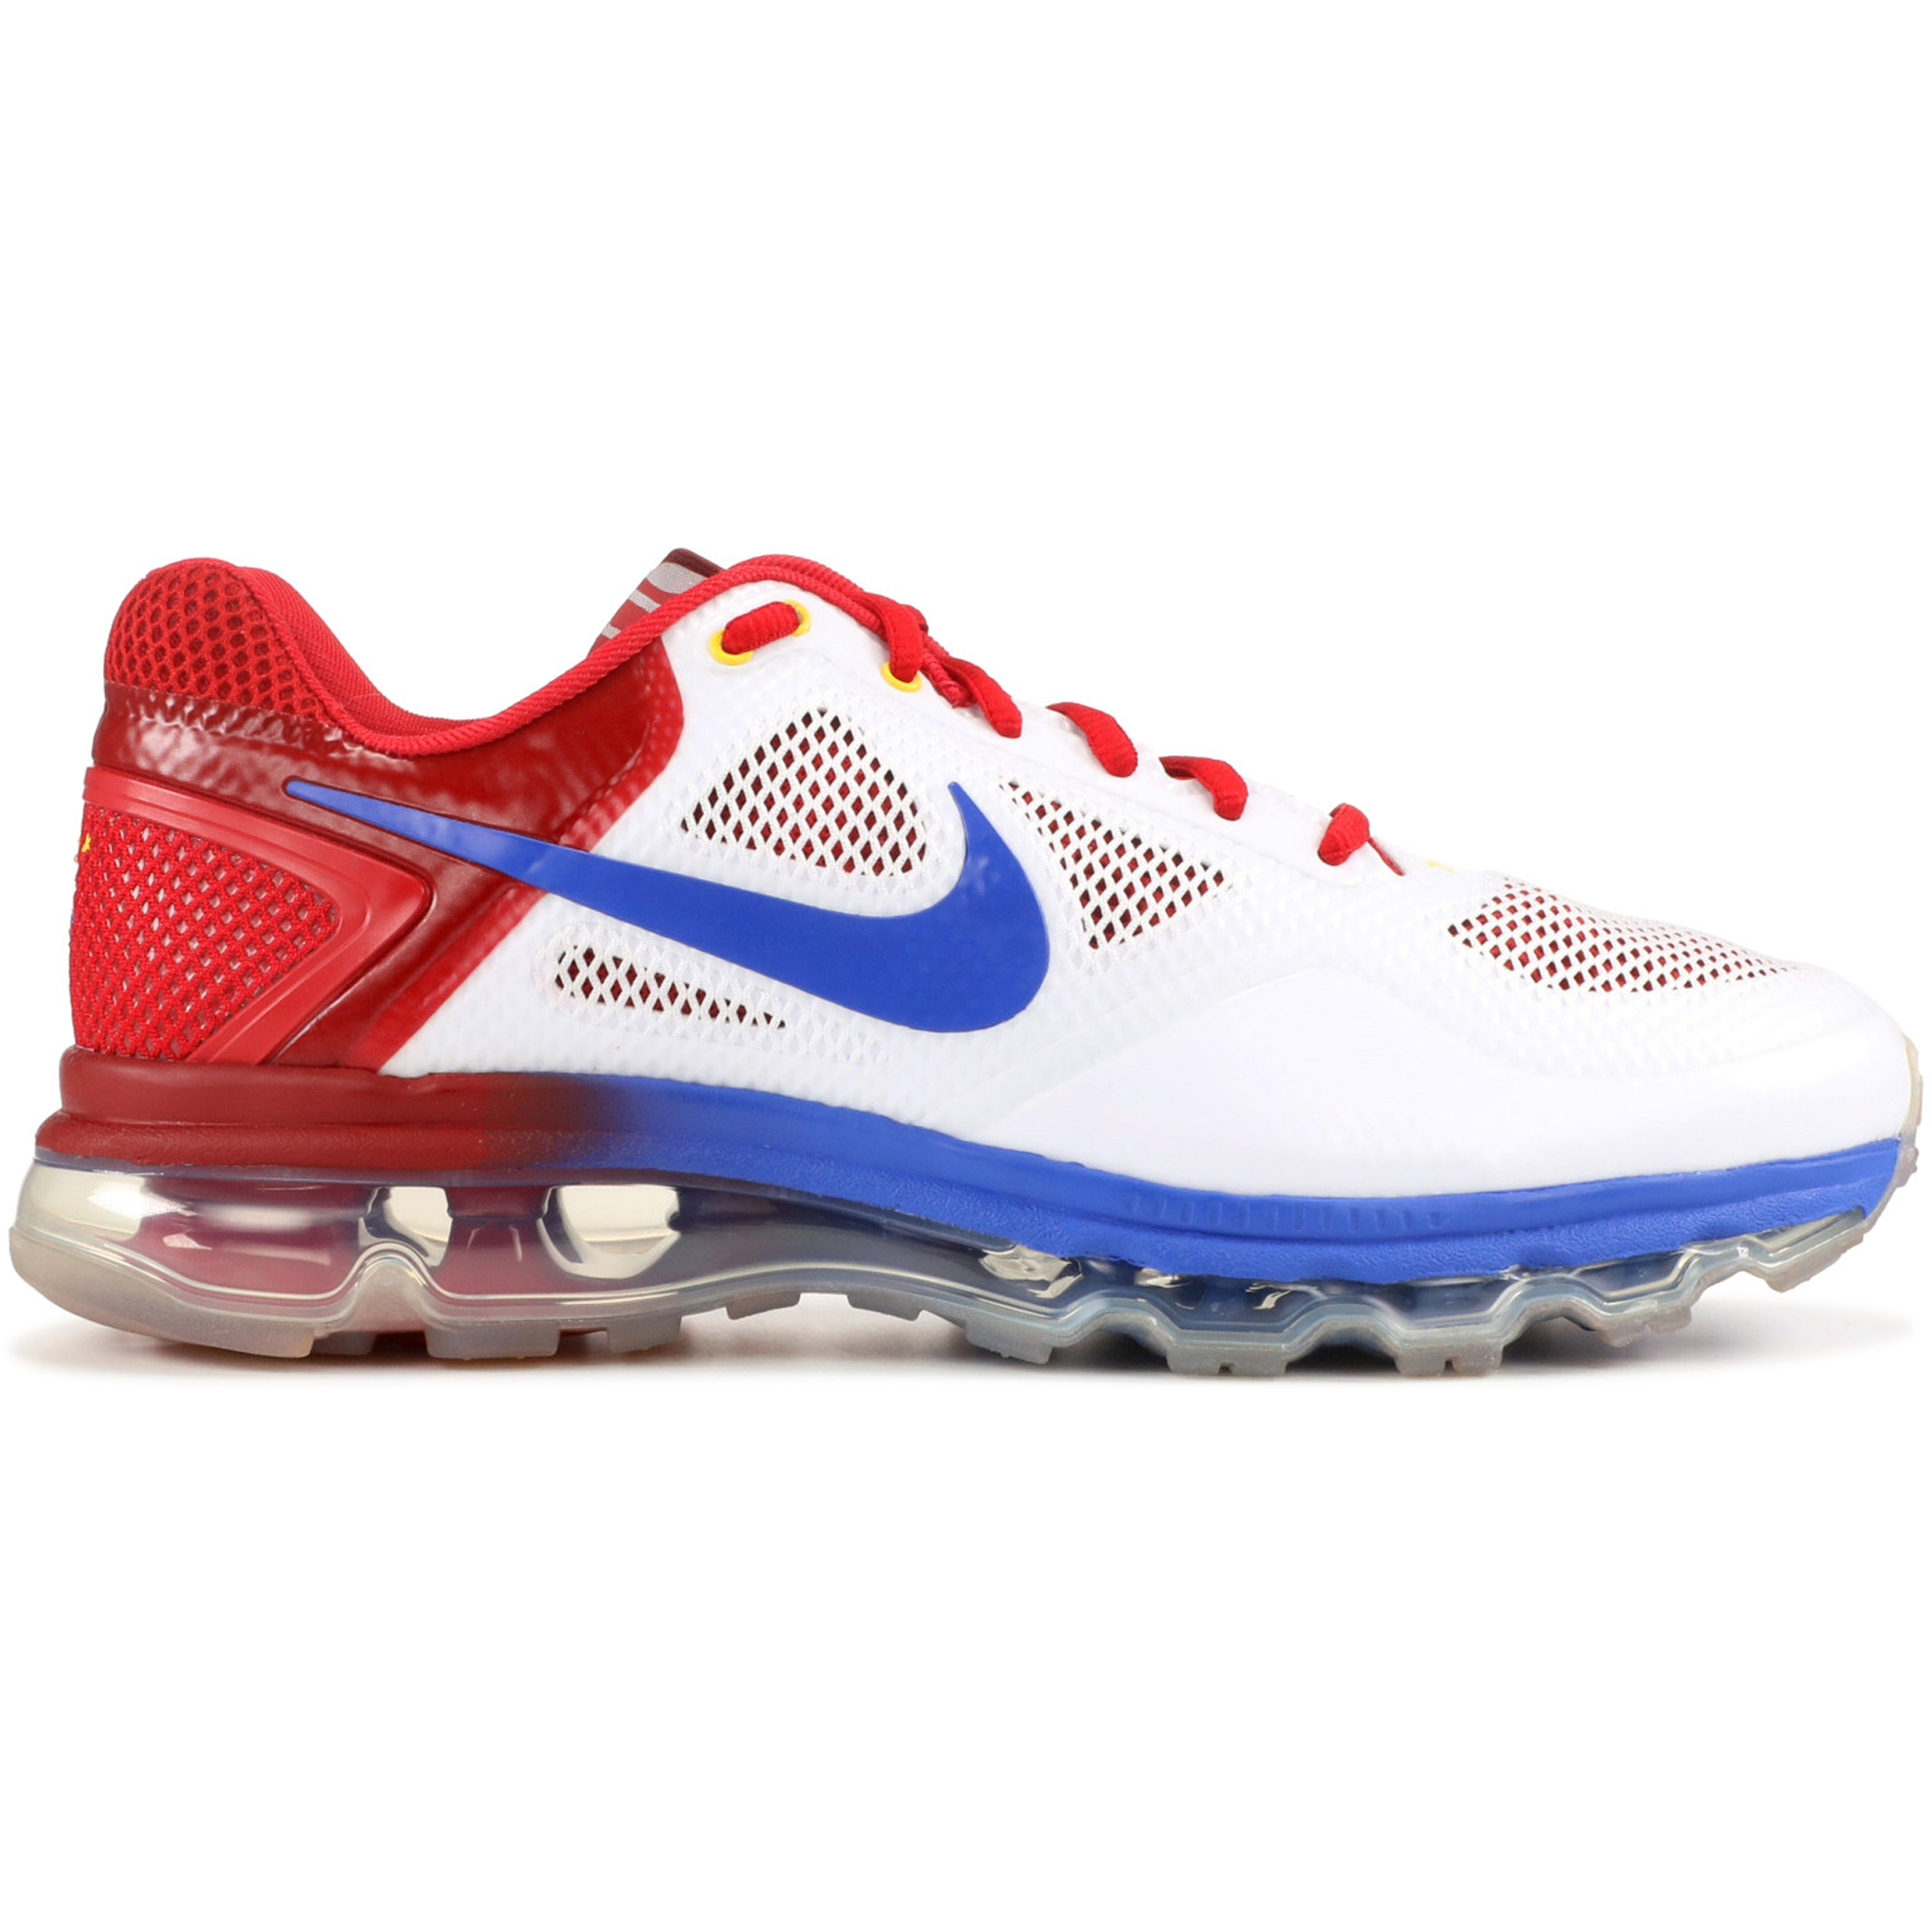 Air Trainer 1.3 Max Breathe Manny Pacquiao